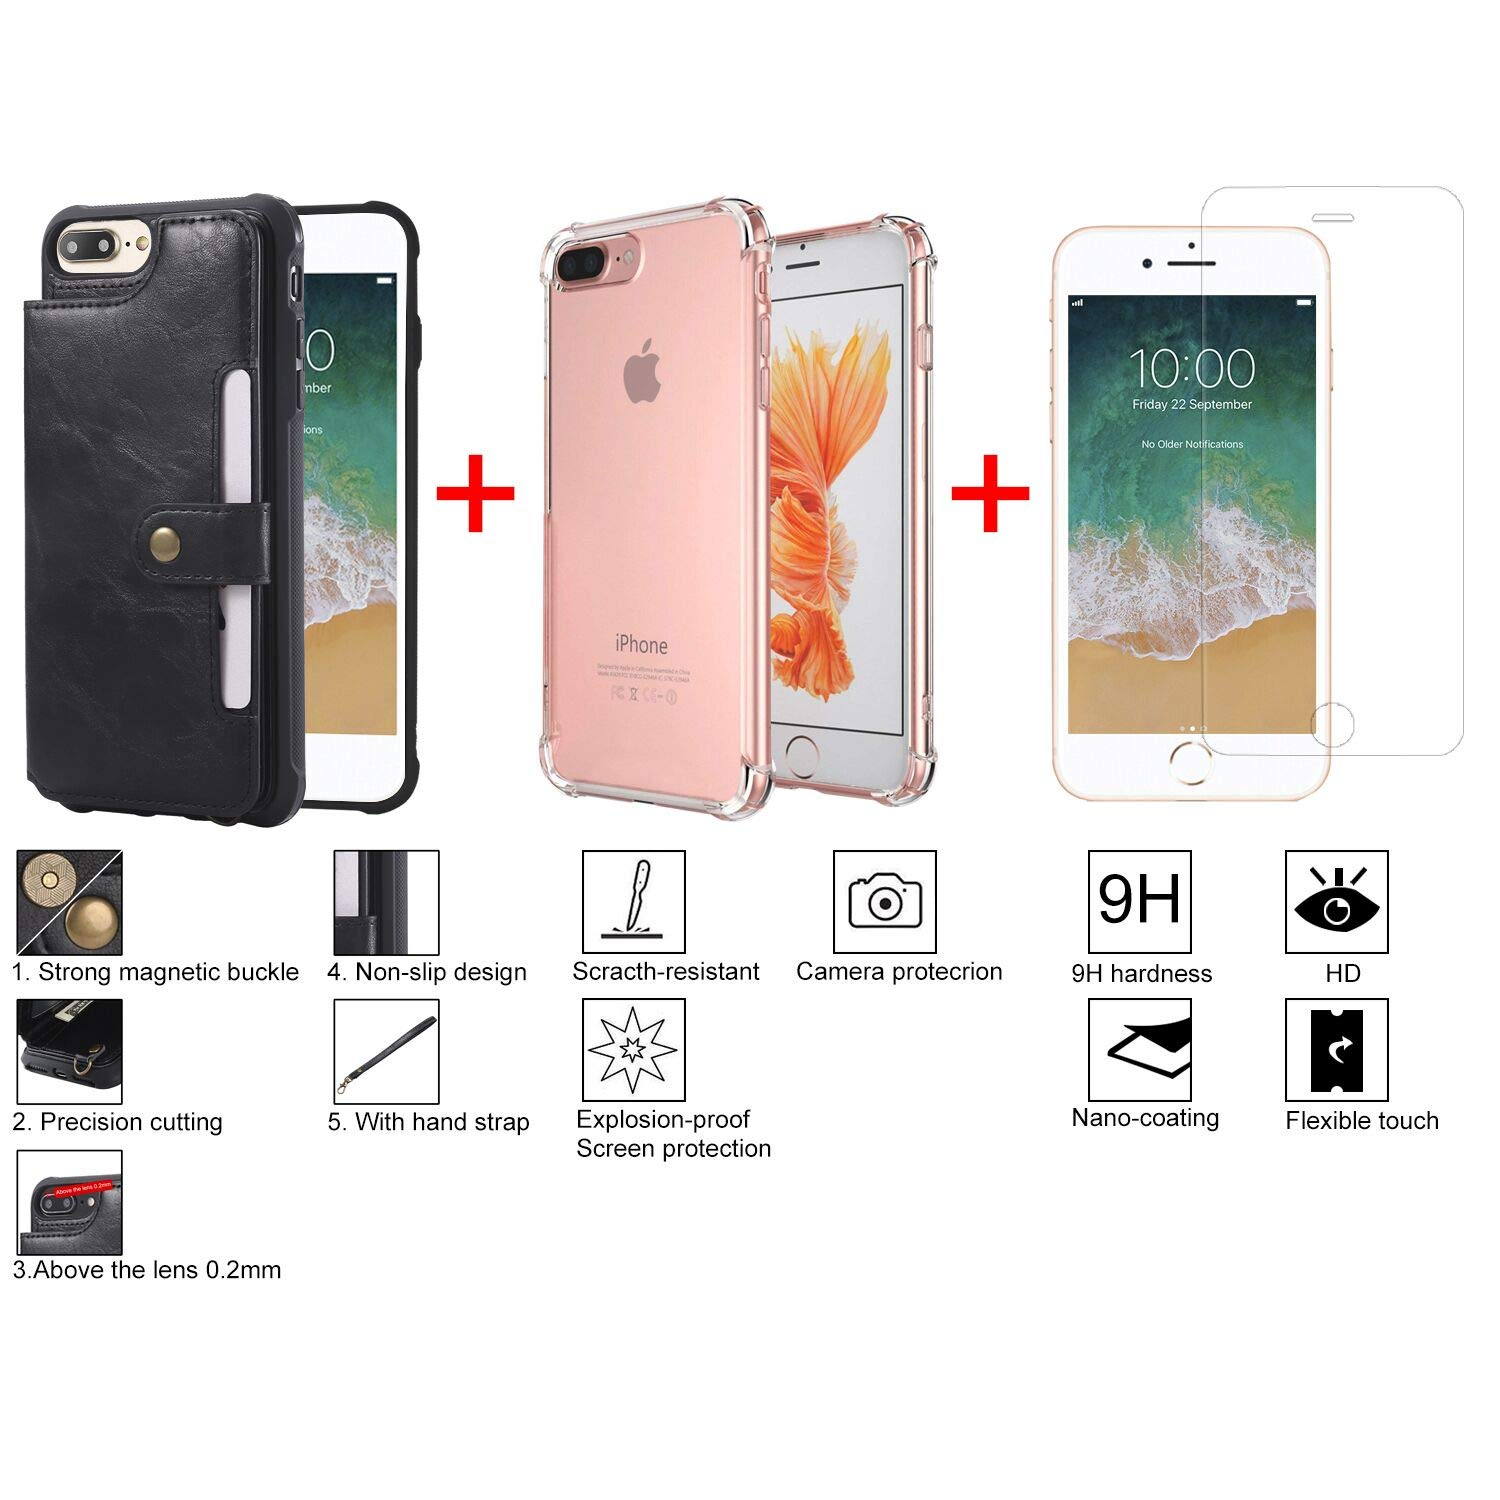 bangcool iPhone 8 Plus Wallet Case Credit Card Holder Slim Shockproof Flip Case Cover Compatible iPhone 7 Plus/8 Plus Clear Bumper Soft TPU Cover Case Screen Protector Glass